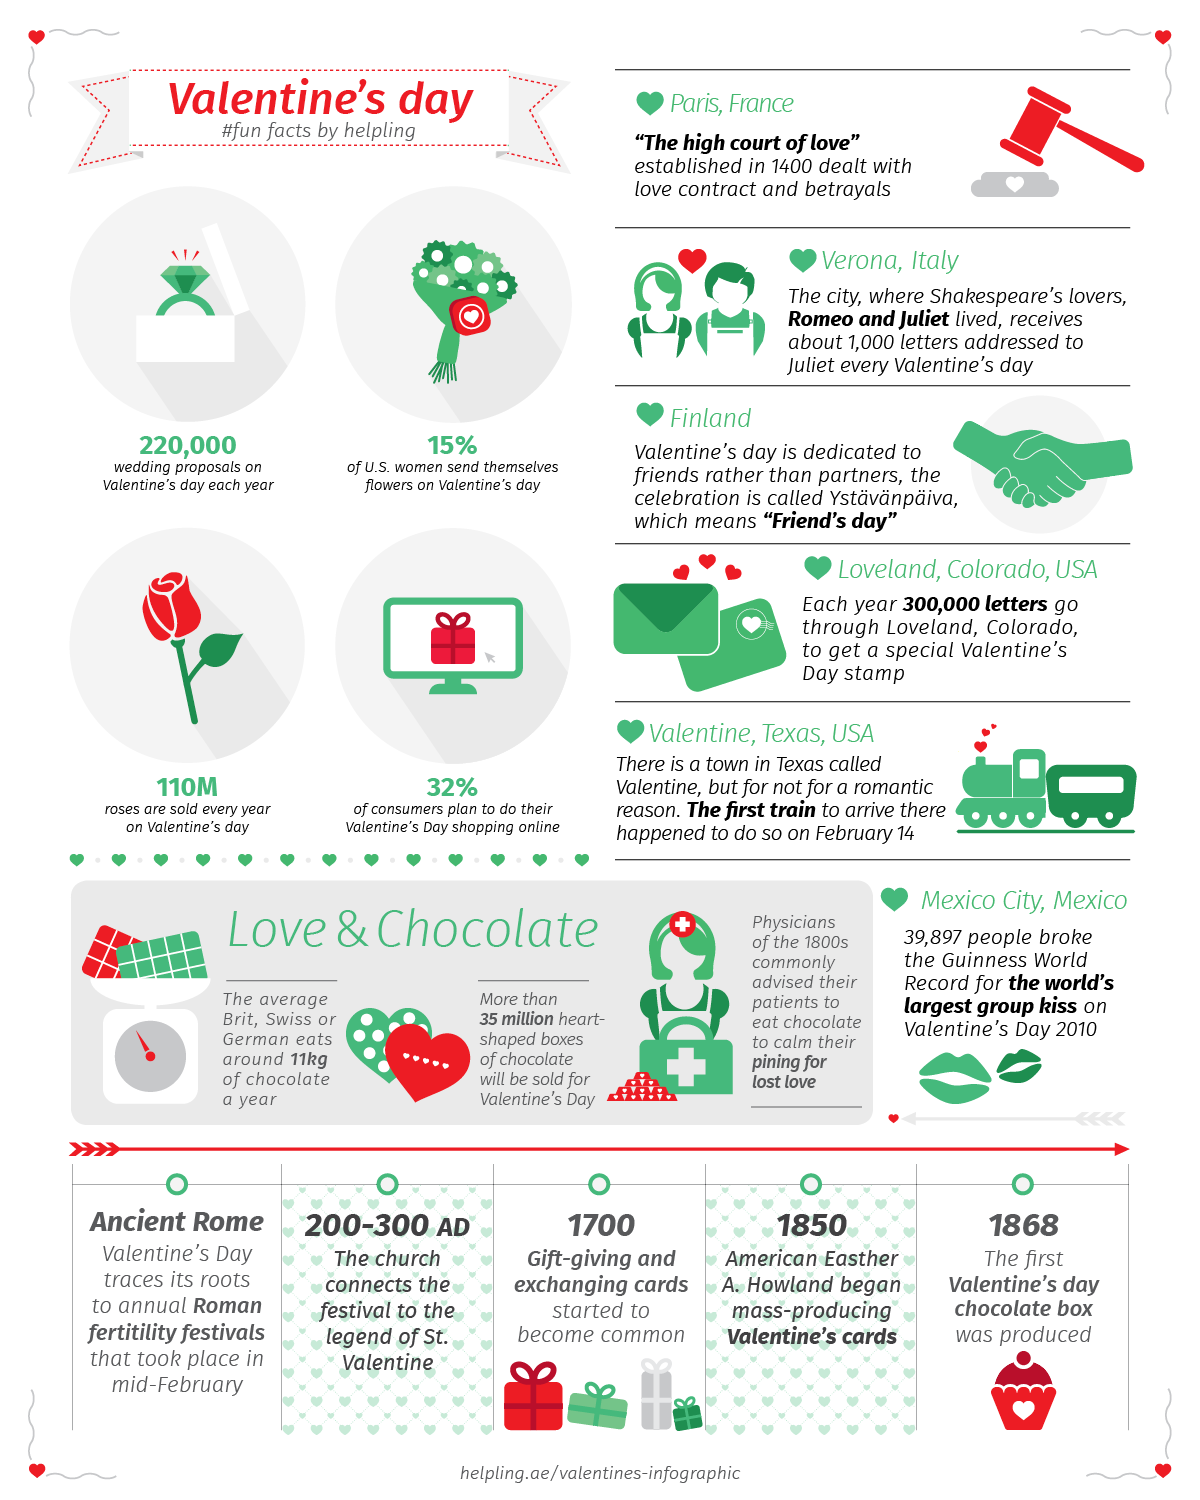 Valentine's Day Infographic from Helpling